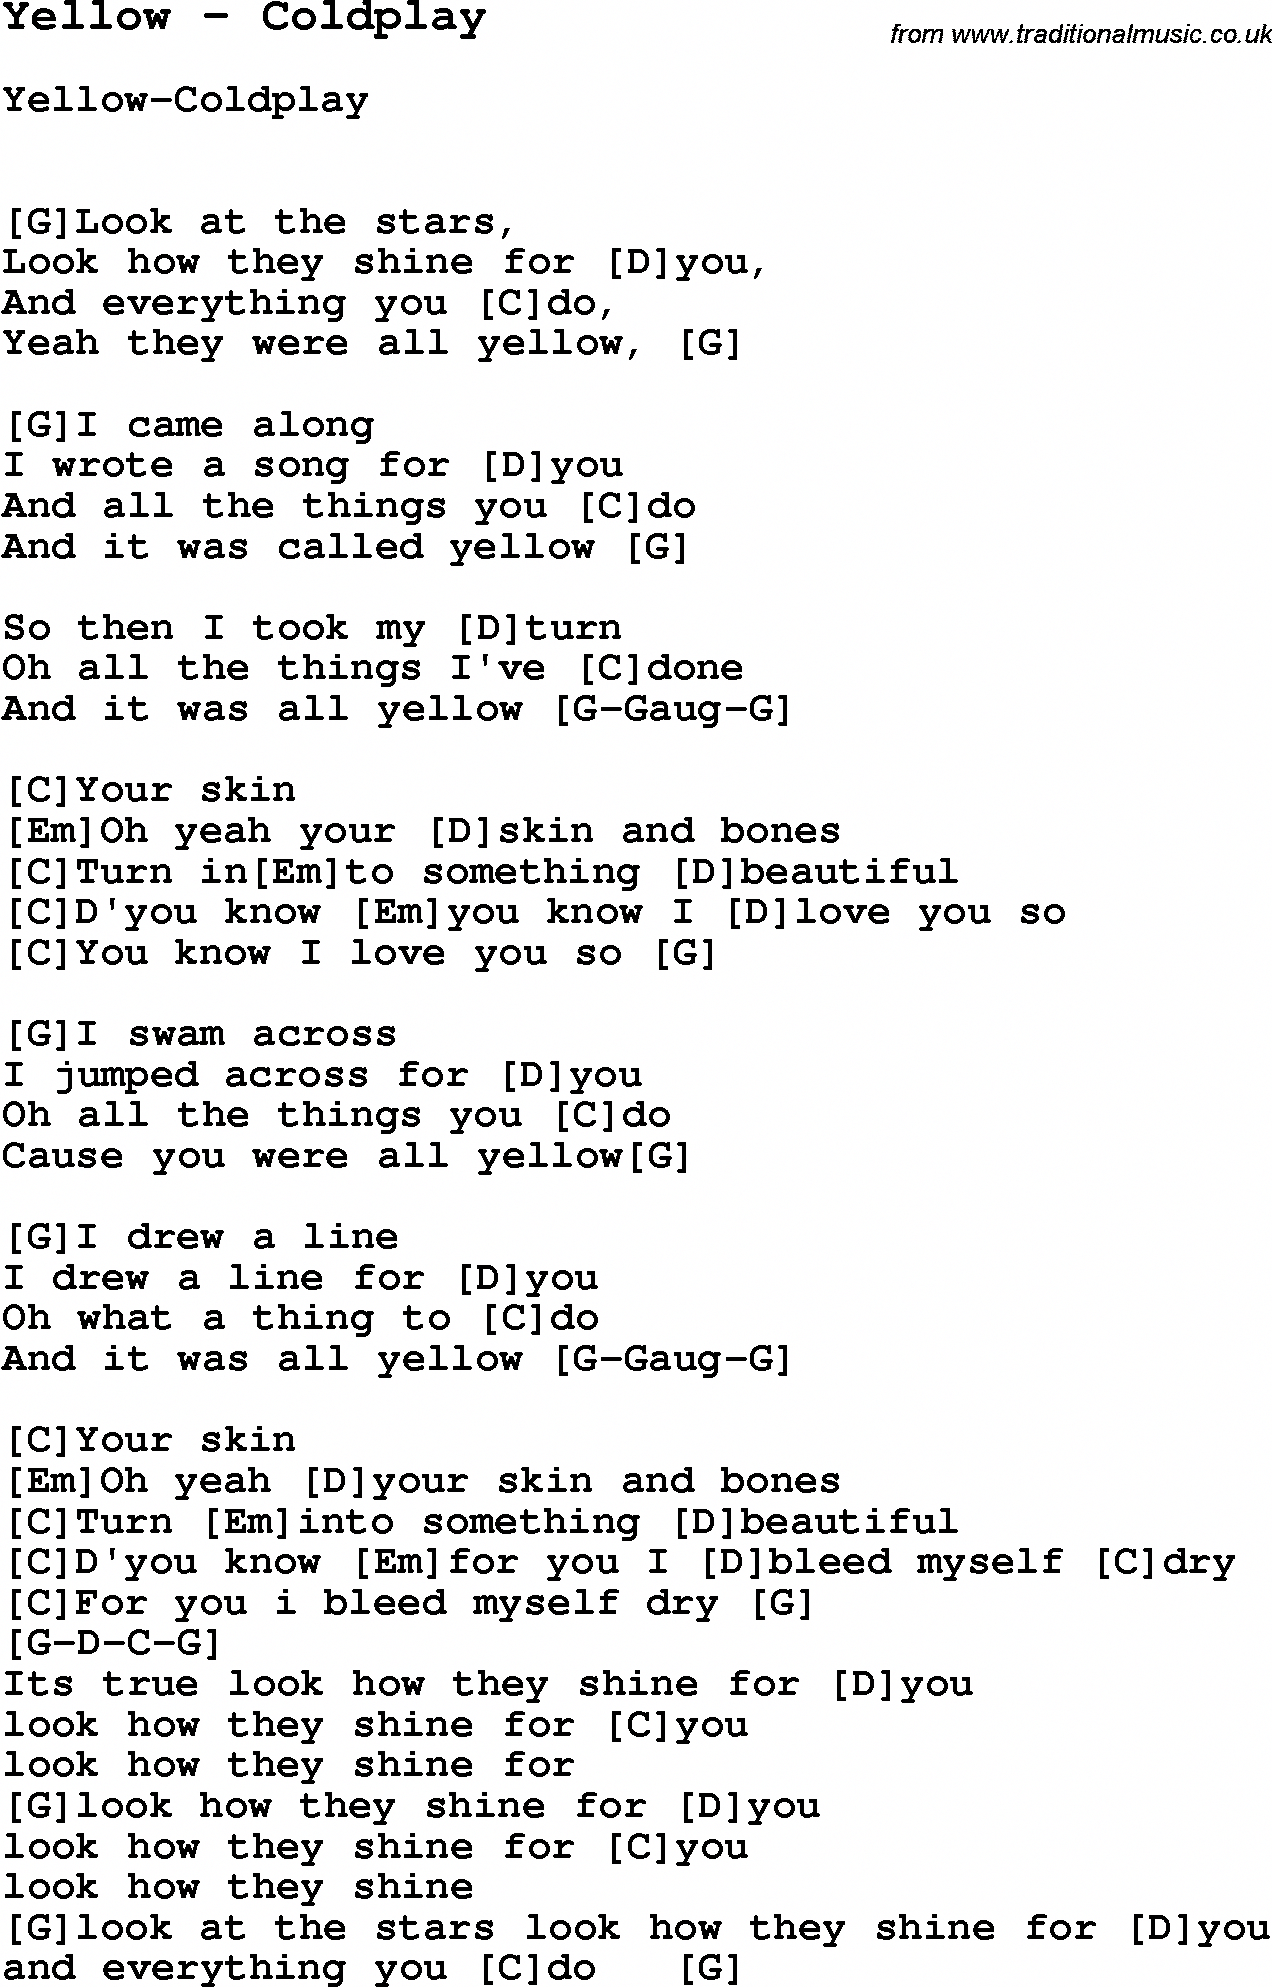 Song Yellow By Coldplay With Lyrics For Vocal Performance And Accompaniment Chords Guitar Chords And Lyrics Ukelele Chords Ukulele Songs Ukulele Chords Songs